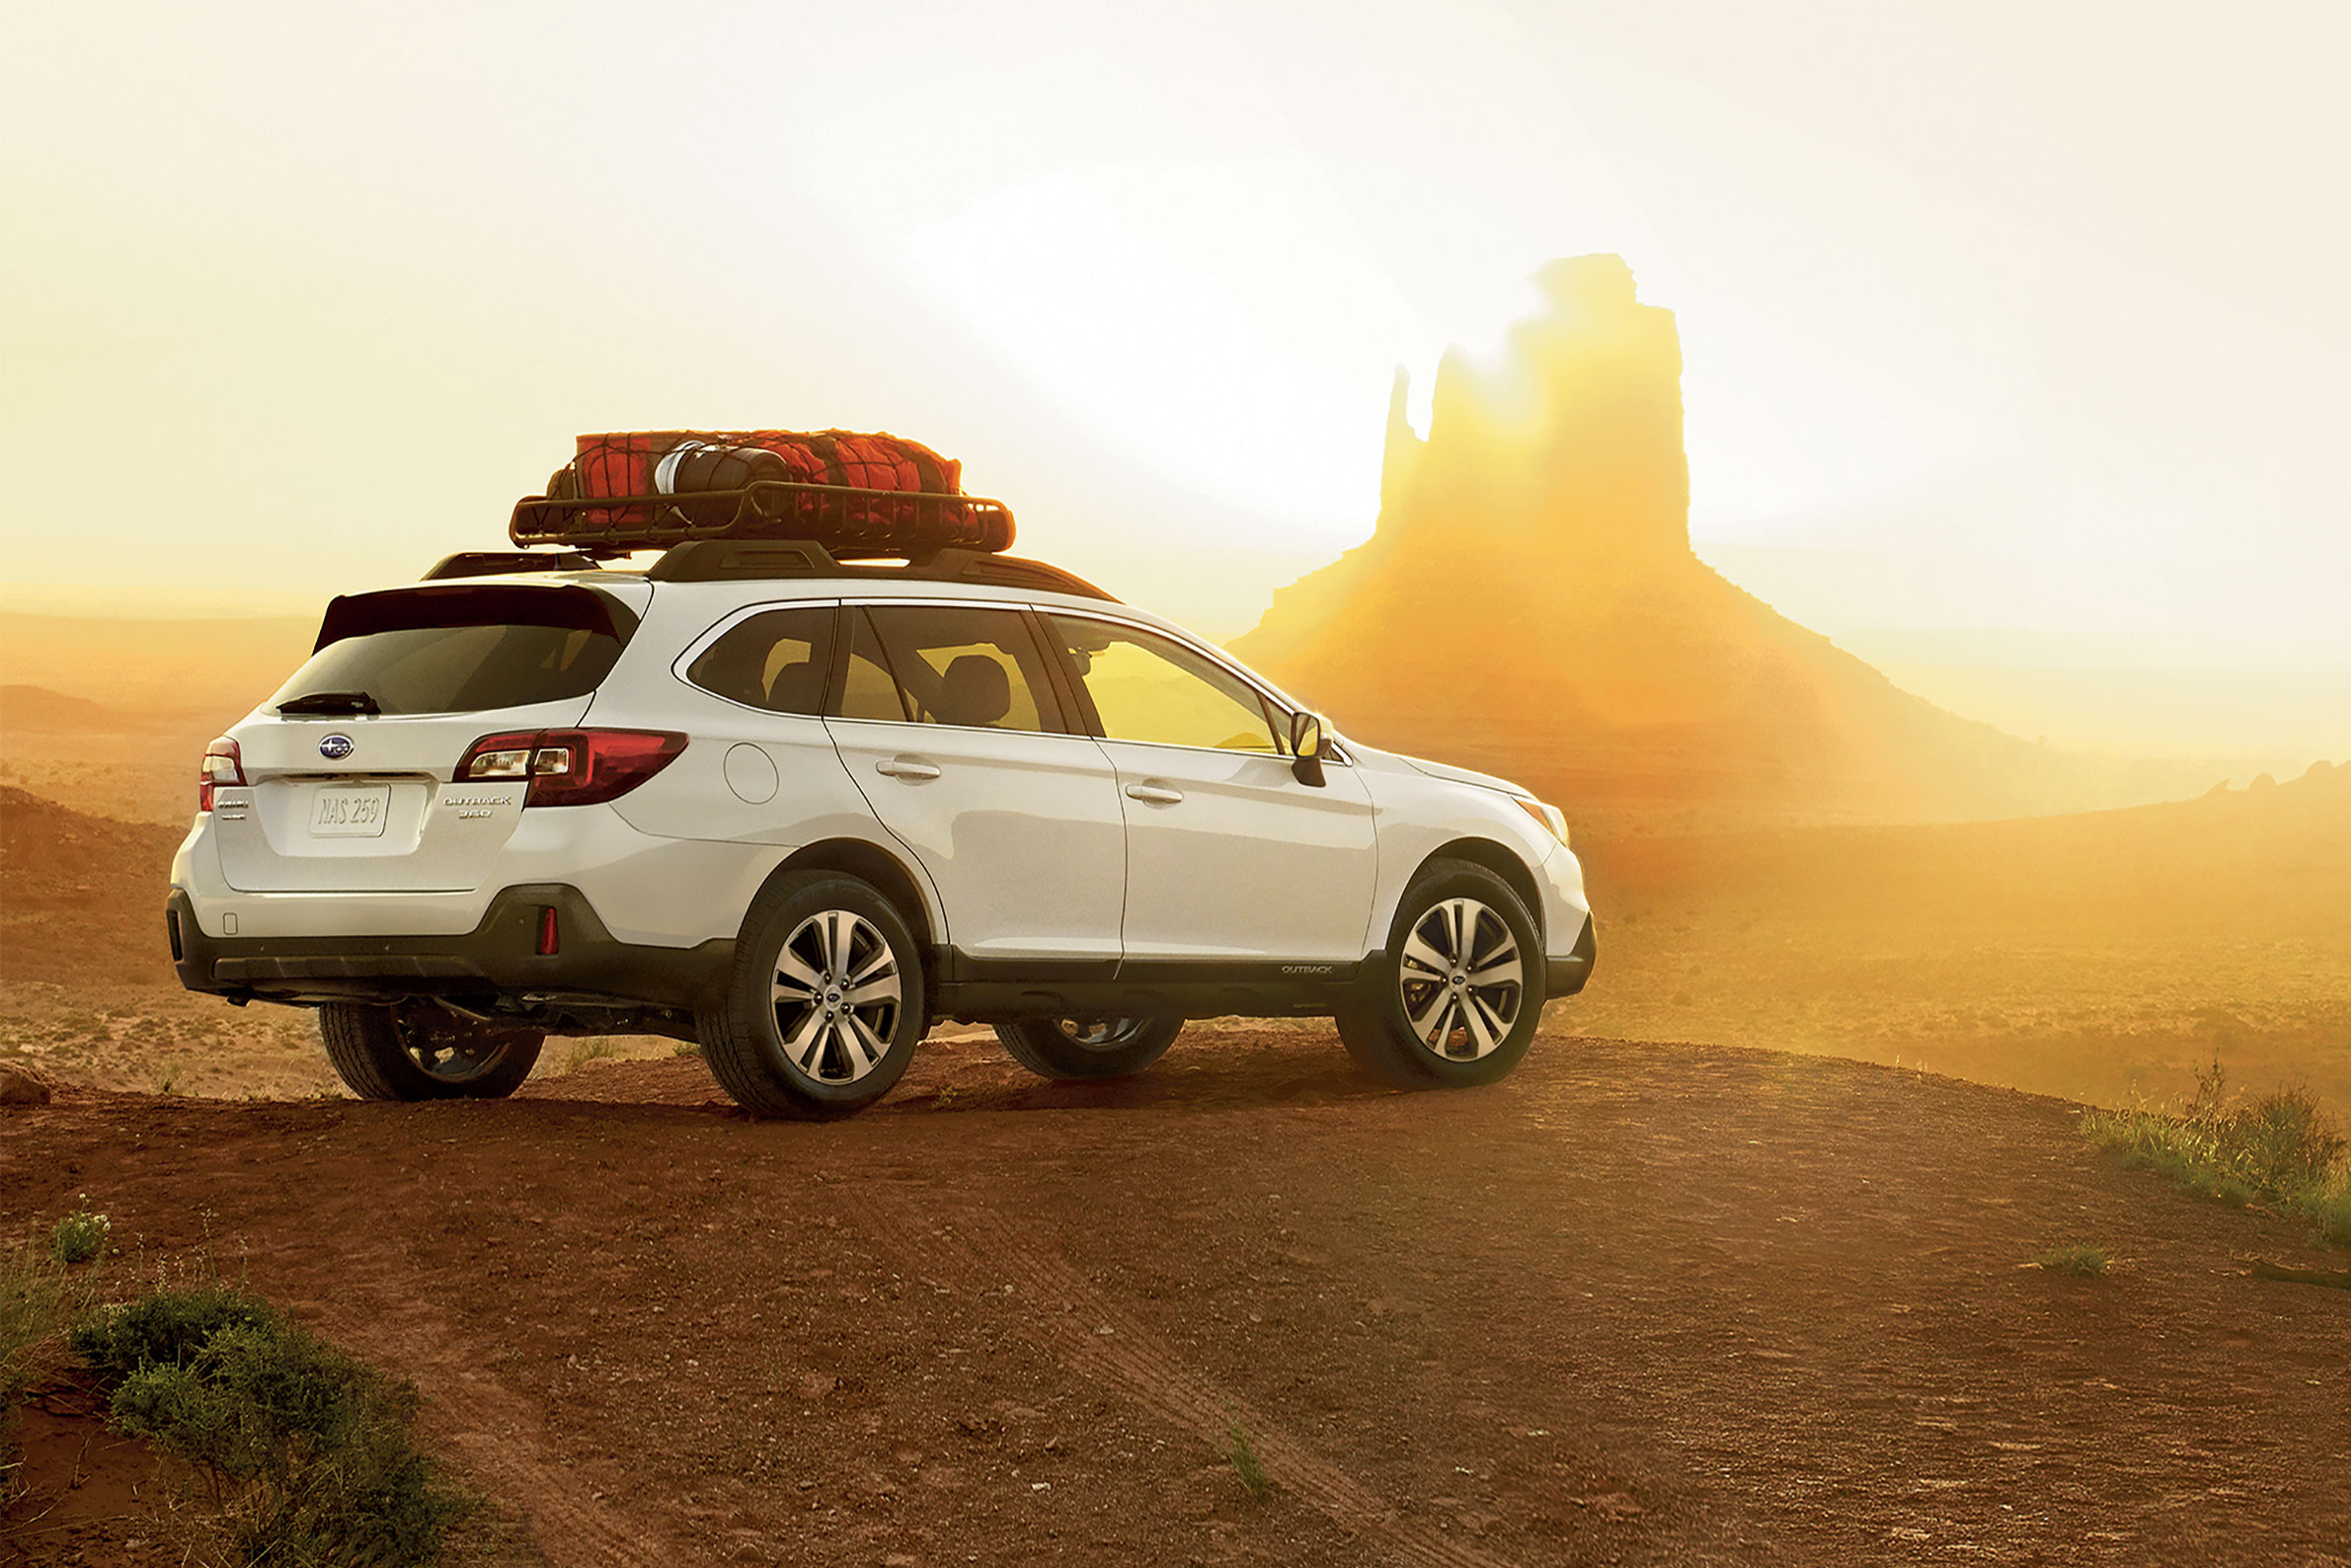 Outback Recall: Subaru Will Exchange New Cars with Defective